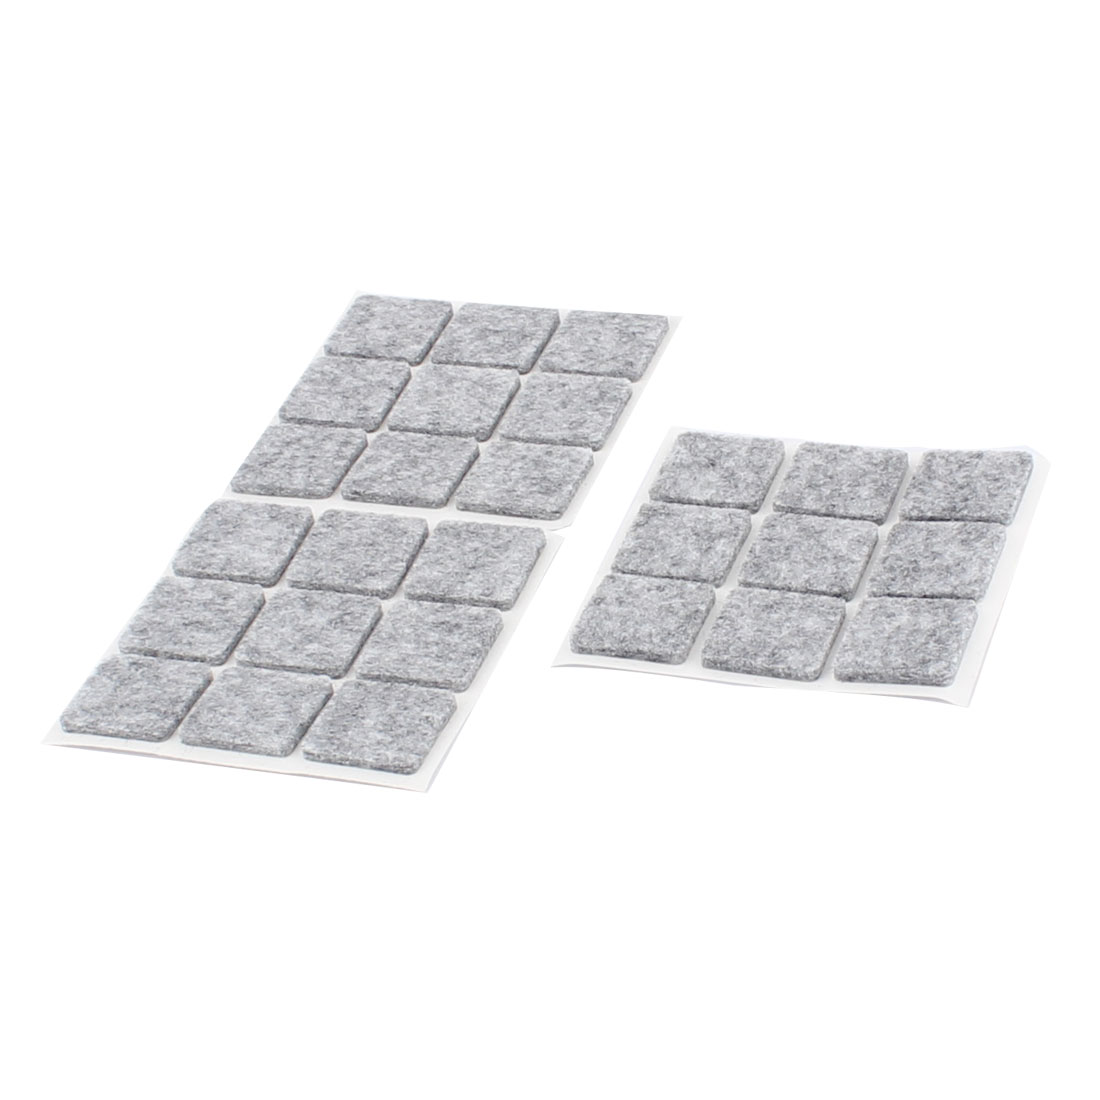 Table Chair Legs Square Anti Scratch Furniture Felt Pads Cover Protector Gray 22 x 22mm 27pcs